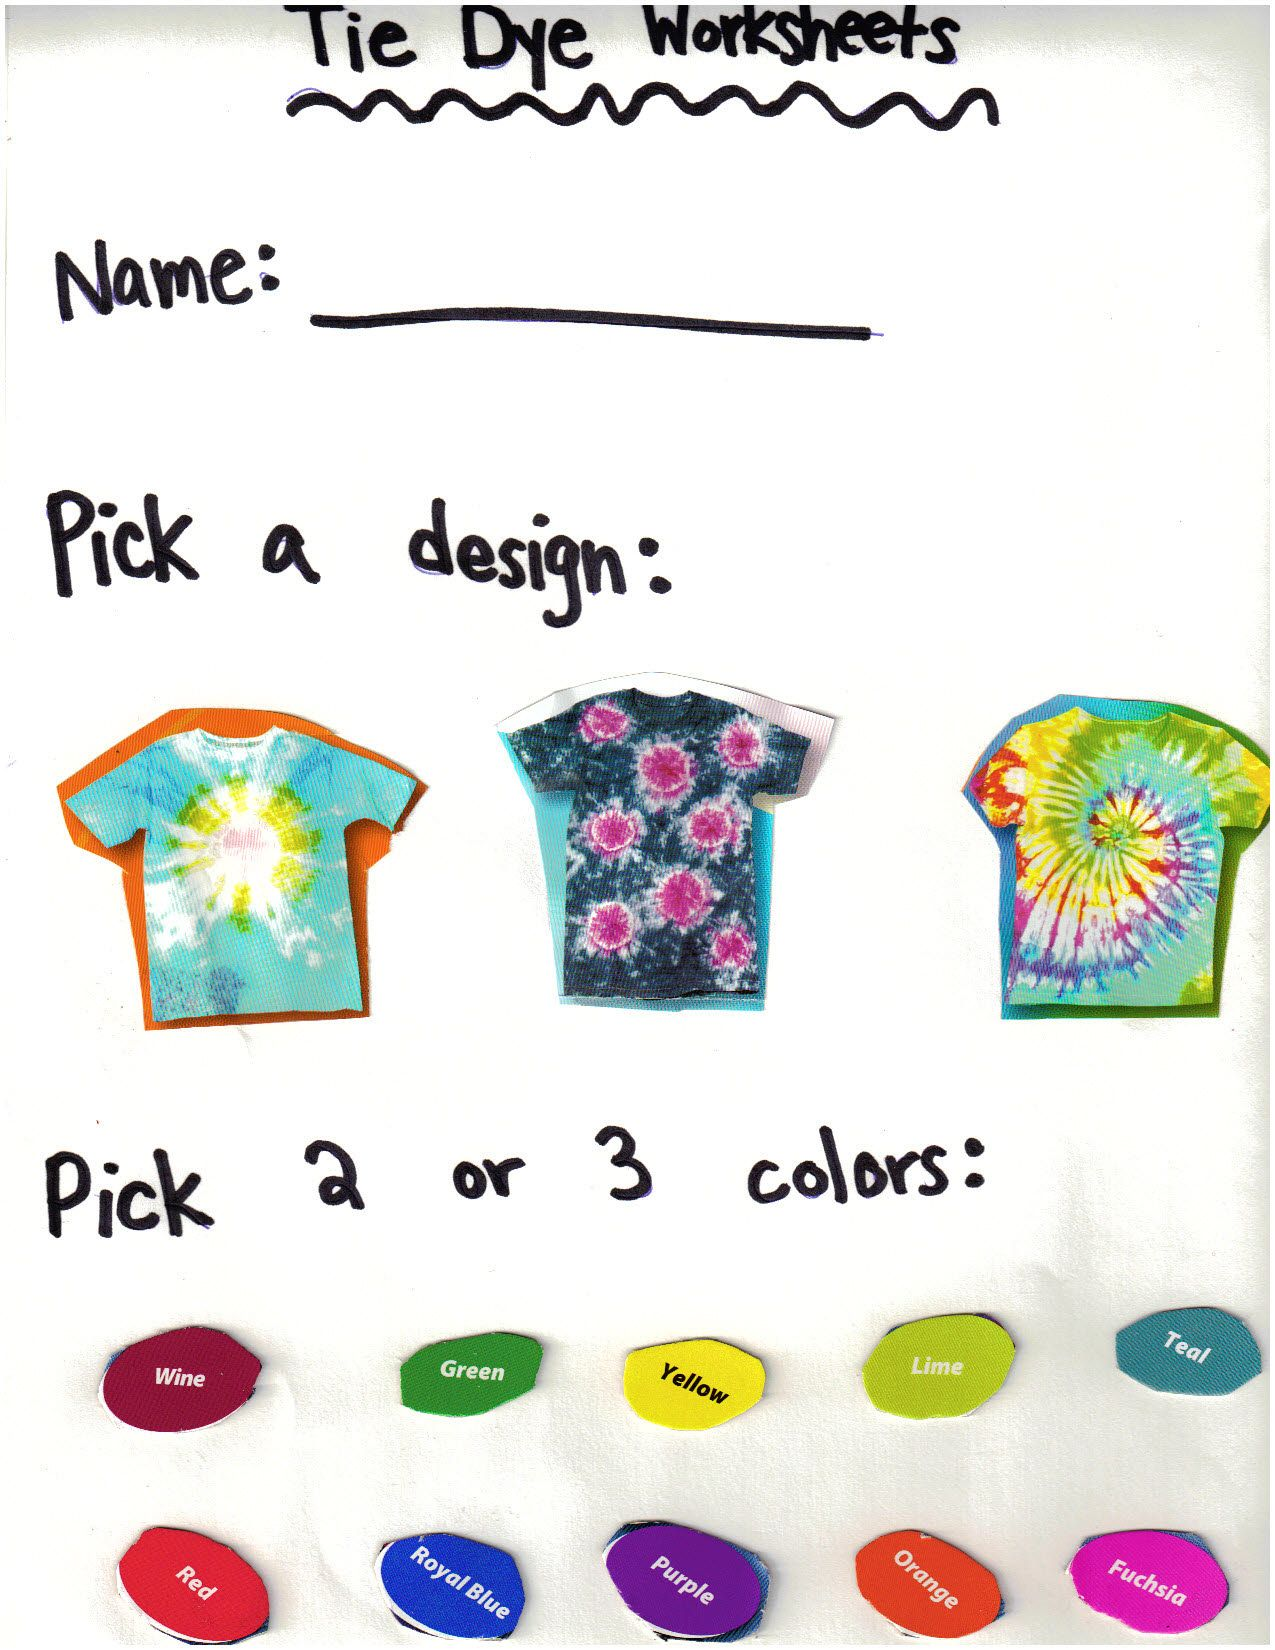 For A Tie Dye Lesson Plan Cut Up Pictures From Tie Dye Box To Make A Worksheet And Have